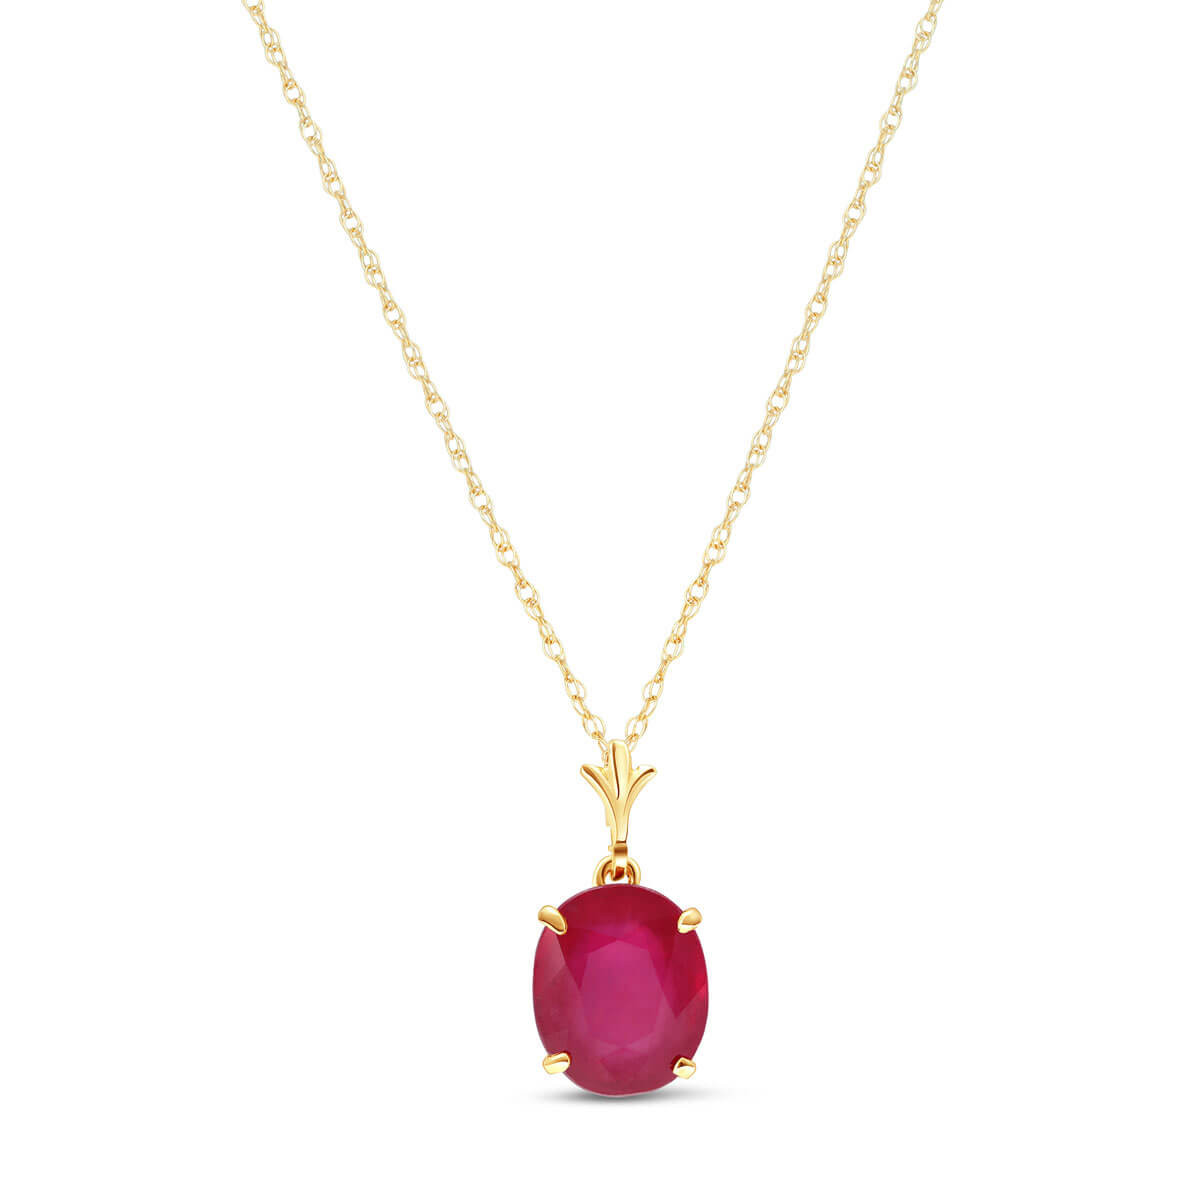 Ruby Oval Pendant Necklace 3.5 ct in 9ct Gold